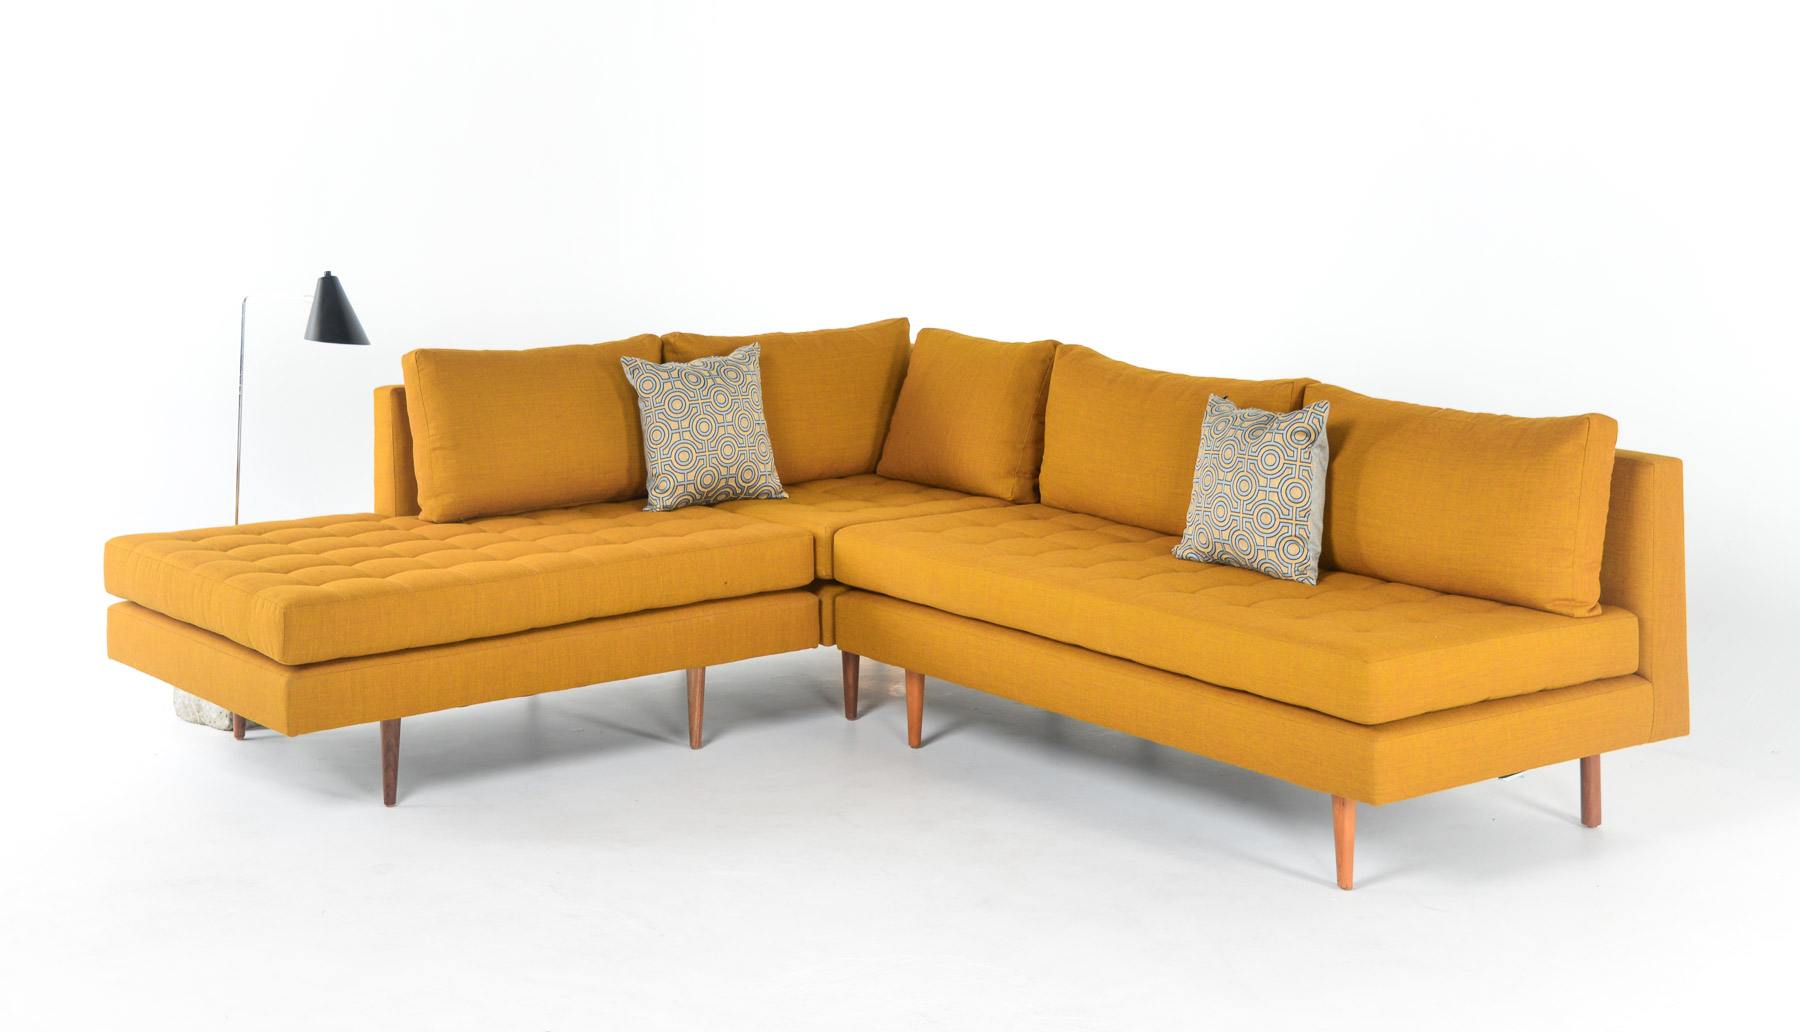 Shown here is 161-003 armless fullback, combined with 161-001 corner chair and a 161-008L.